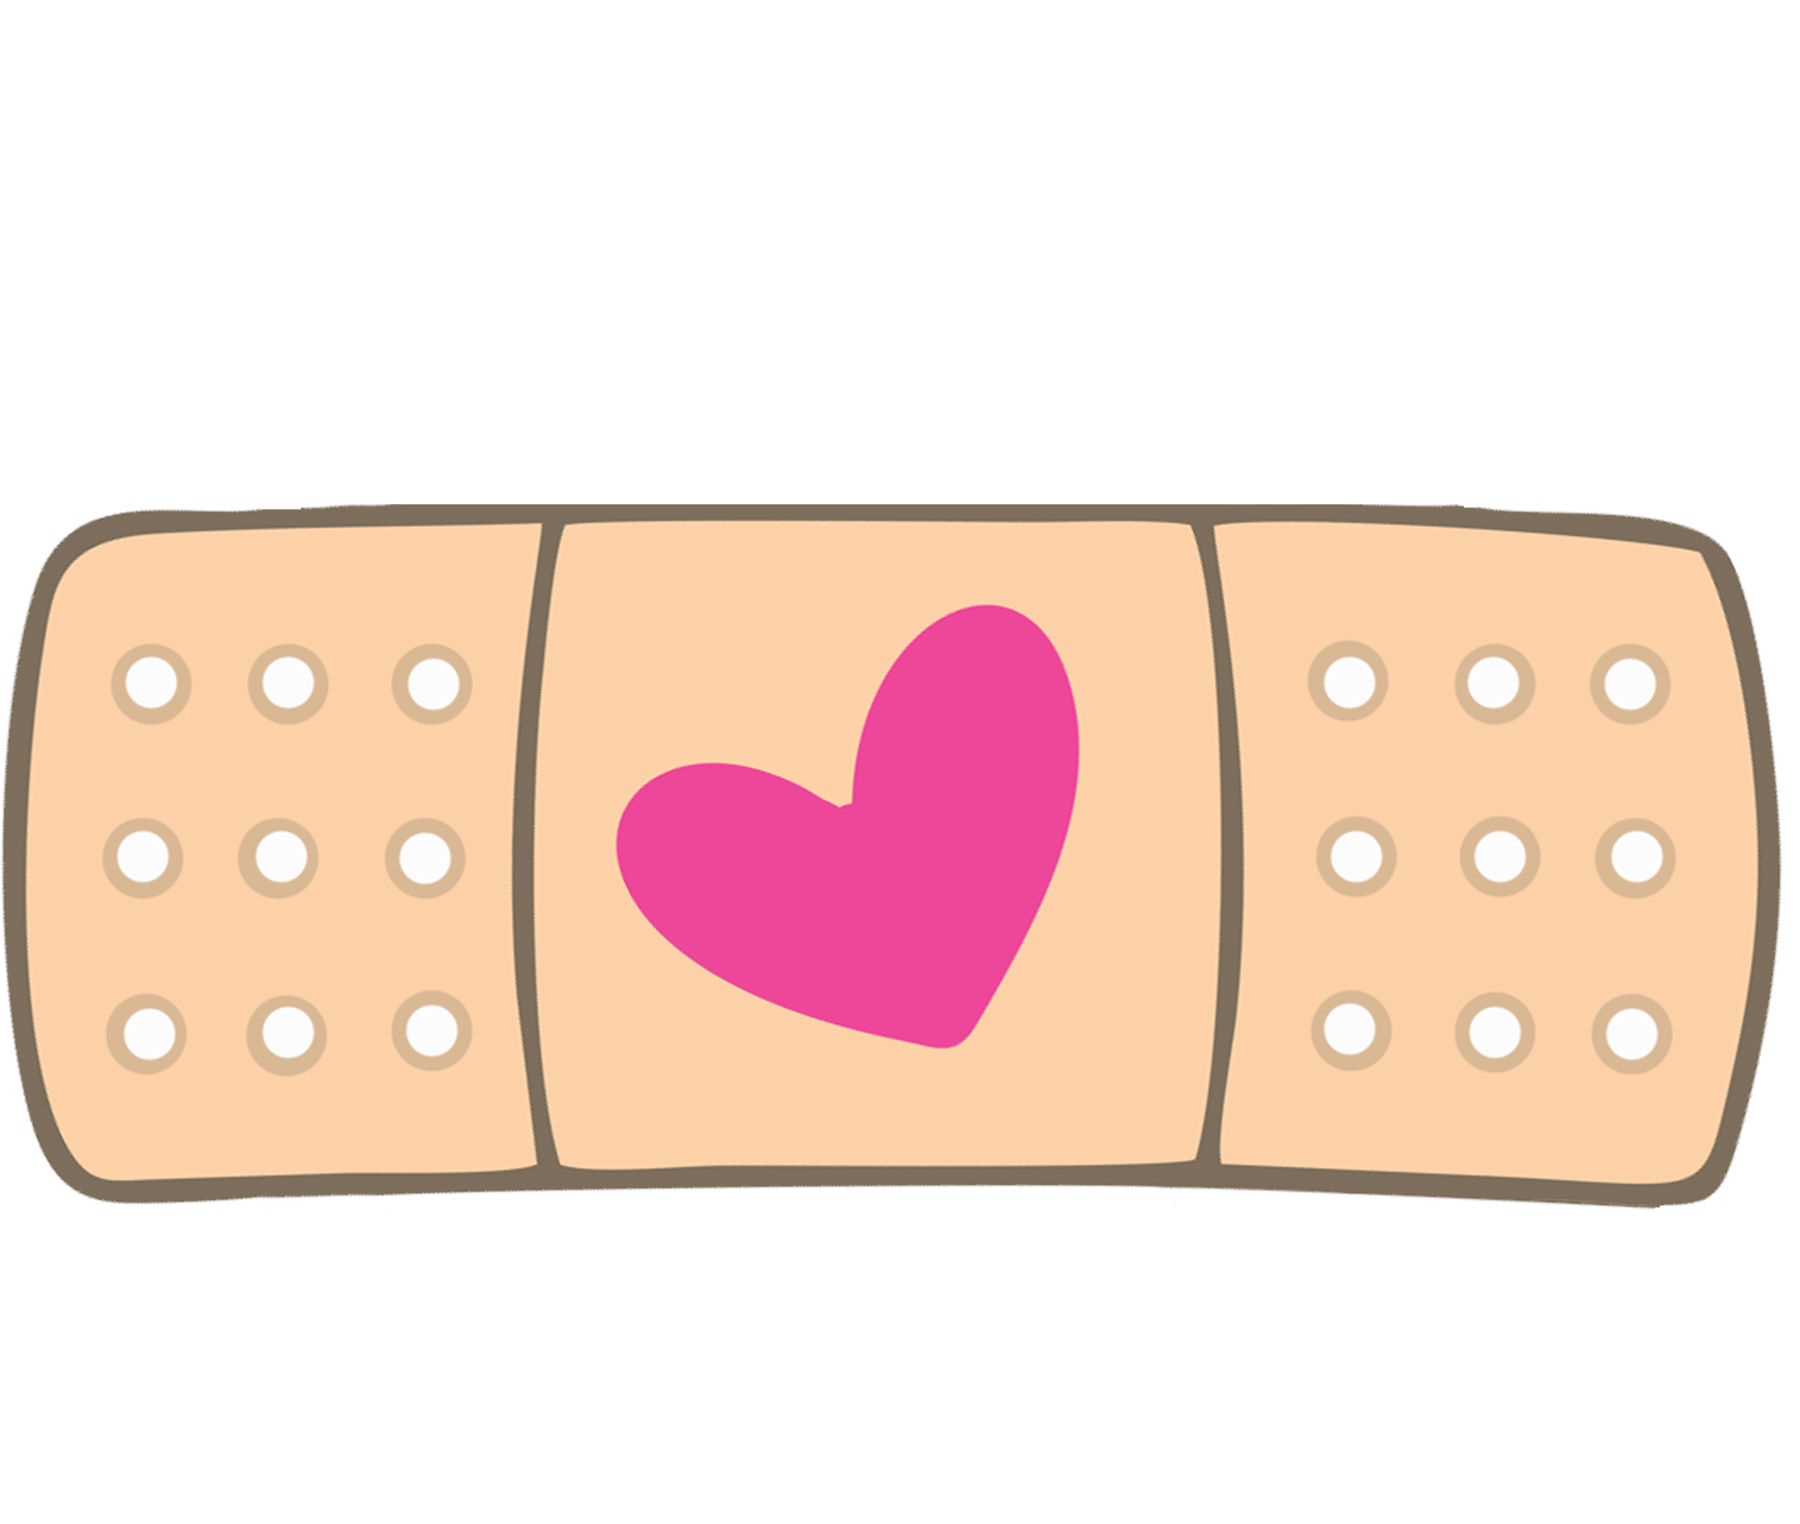 Box clipart band aid Art aid clip Bandaid art